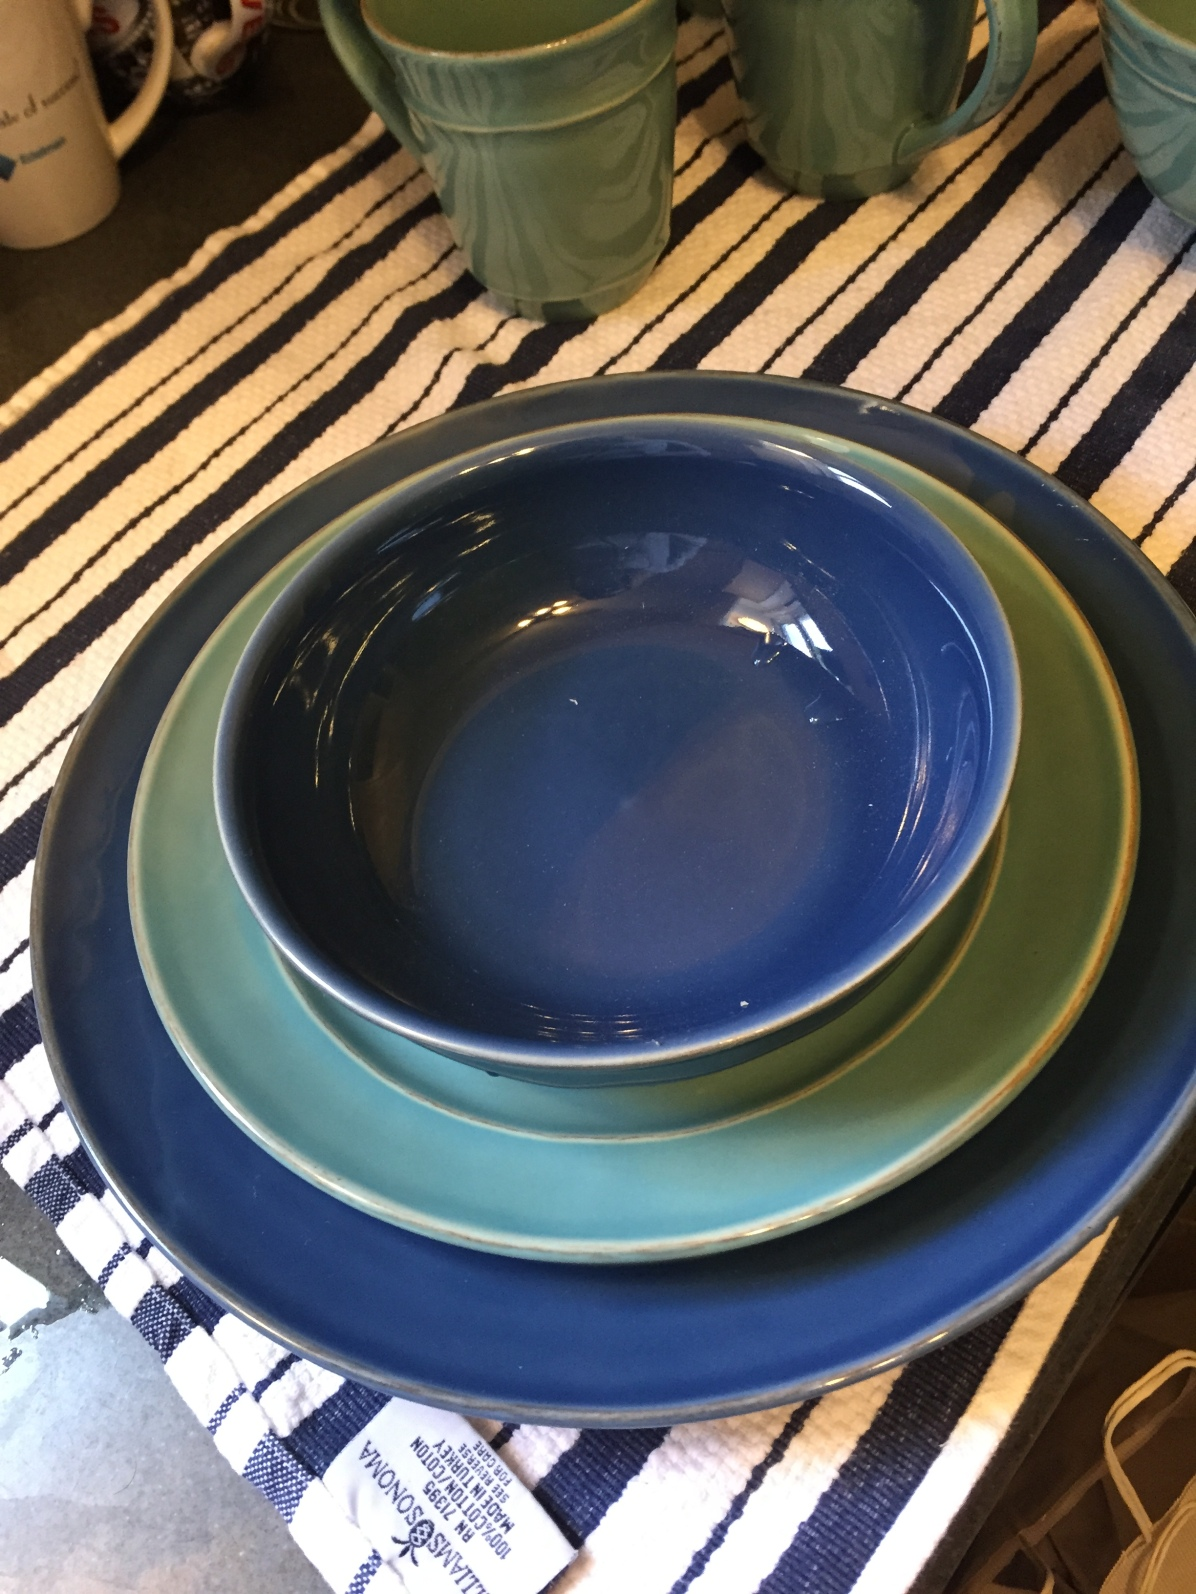 You spend Friday night buying dinnerware at Pottery Barn.